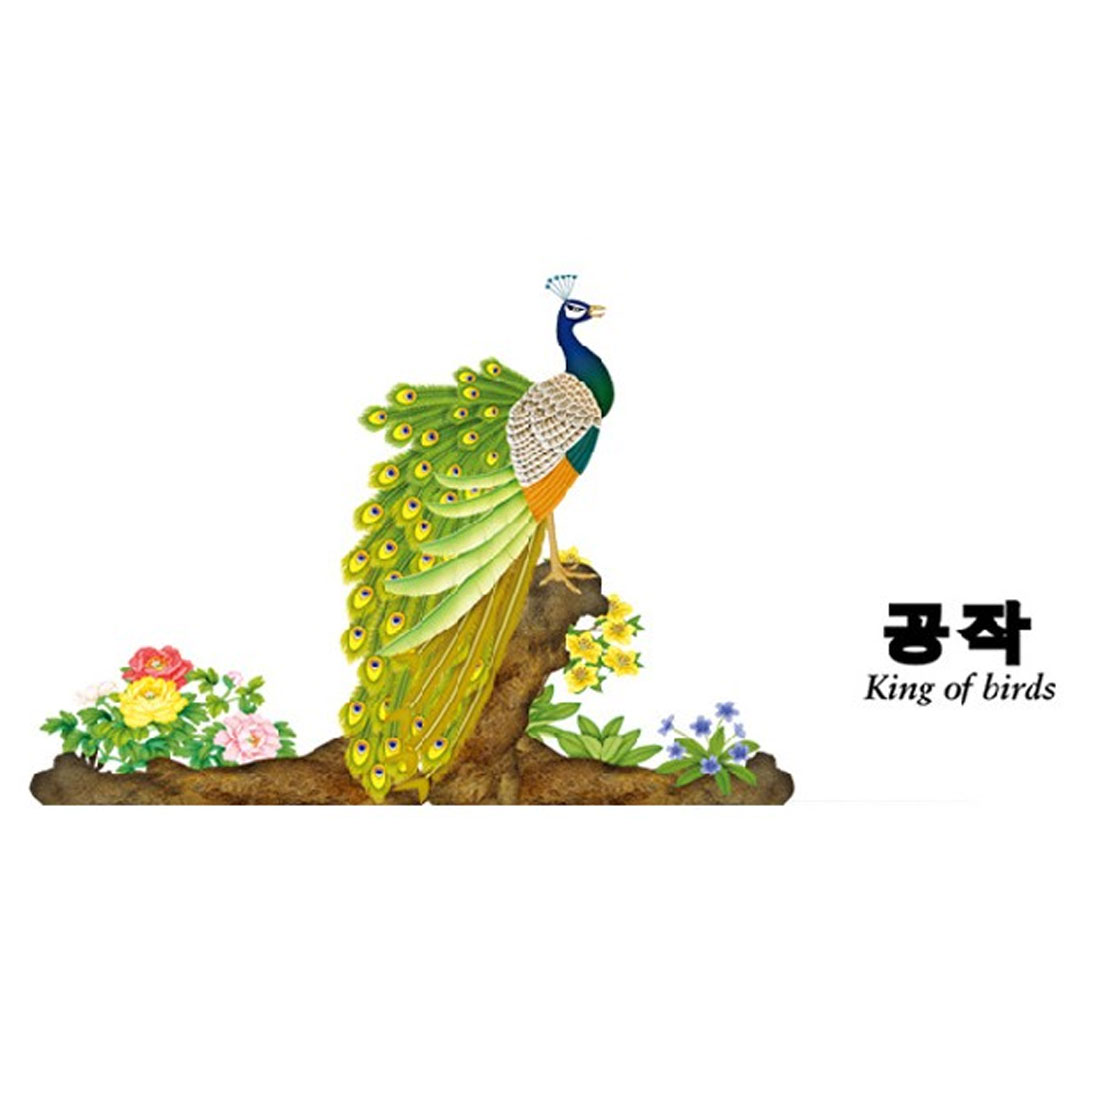 Flower Peacock Pattern PVC Wall Sticker Paper Mural Ornament 90 x 60cm